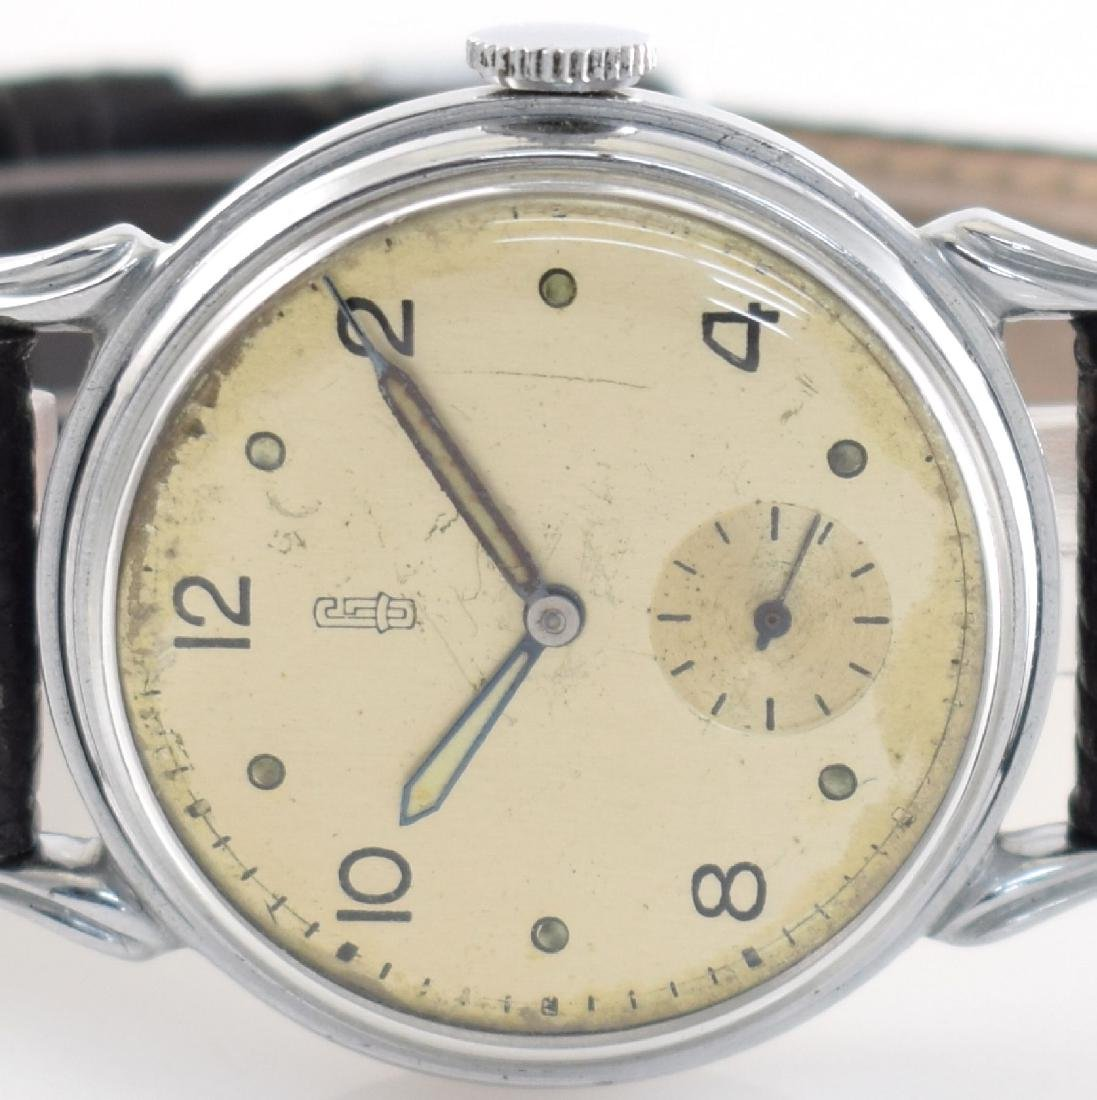 GLASHUTTE rare early gents wristwatch calibre 61 - 2